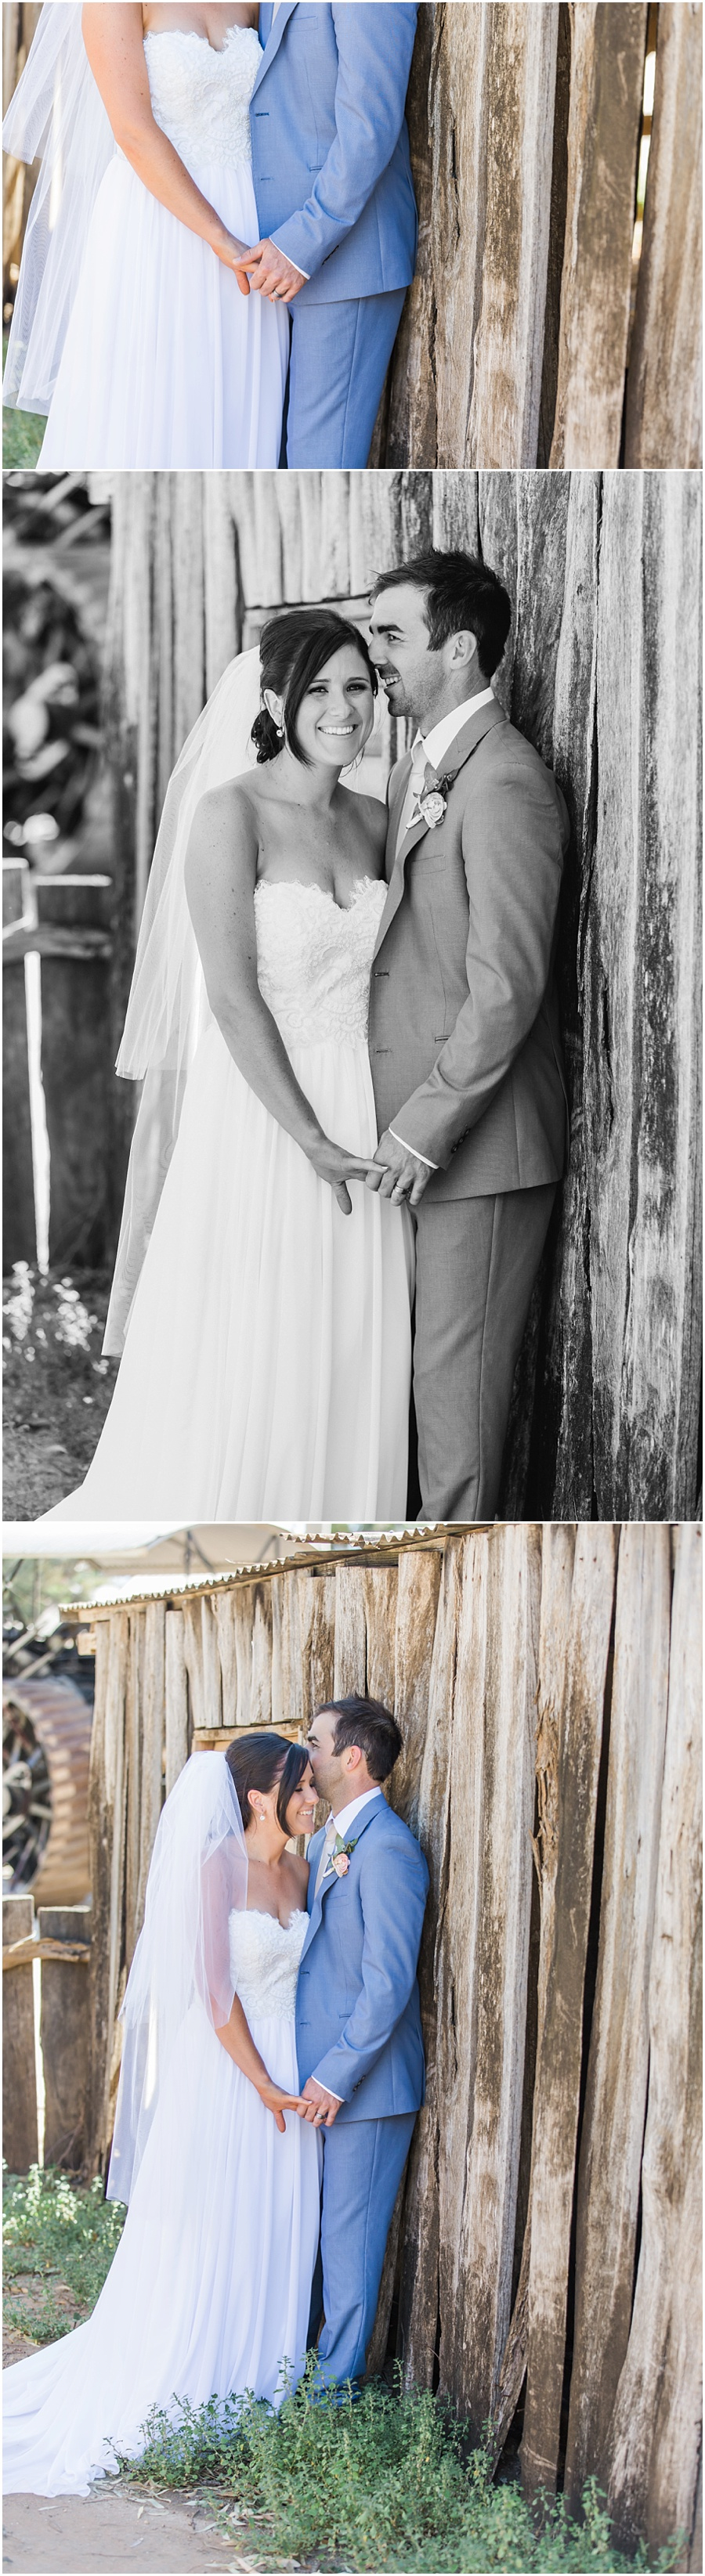 Daylesford Wedding Photographer_0061